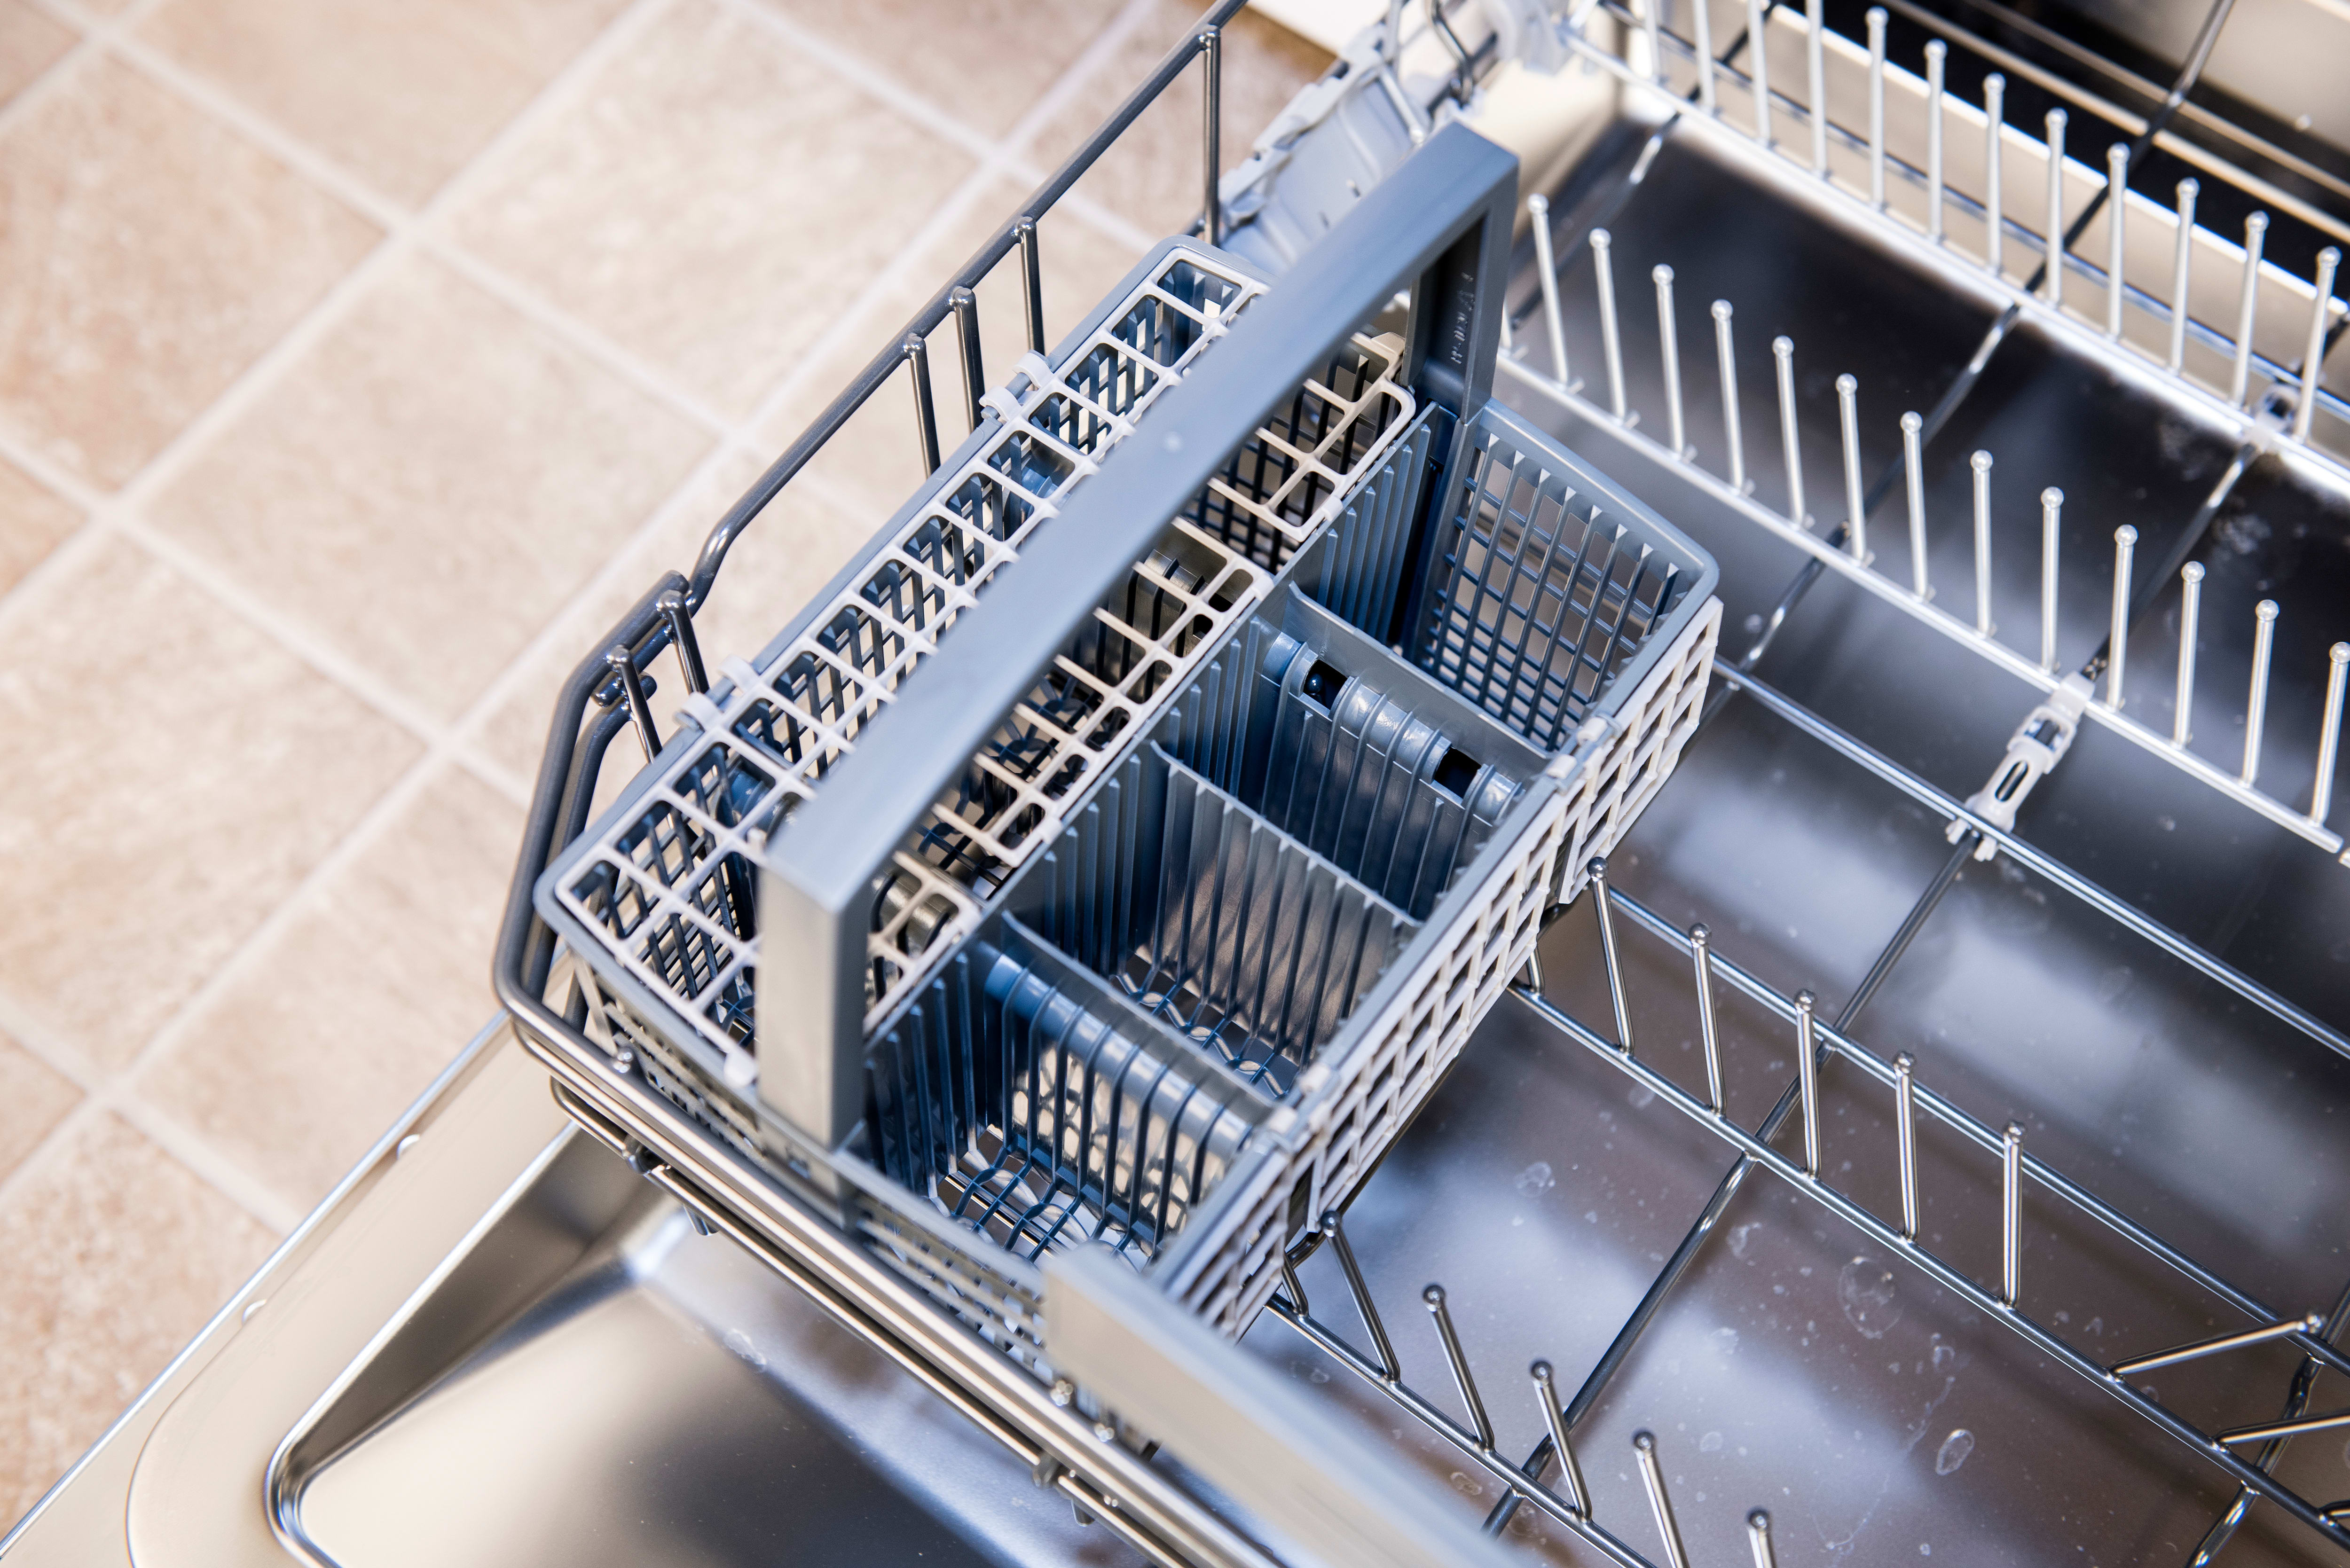 Thermador Topaz DWHD640JPR empty cutlery basket